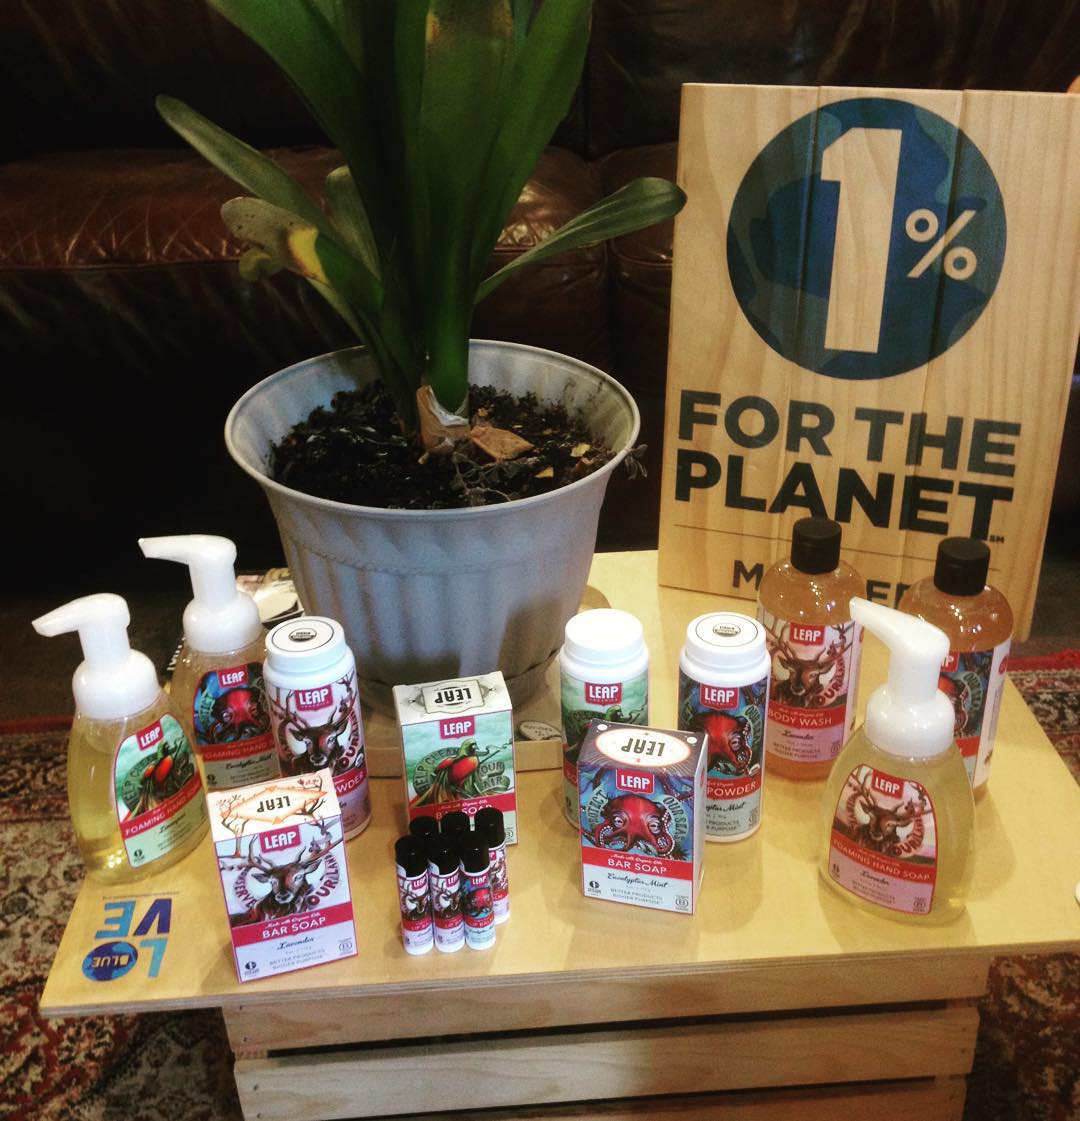 Thanks to 1% for the Planet @leaporganics for our surprise goods, and thank you for making your business and engine for positive environmental change. #giveback